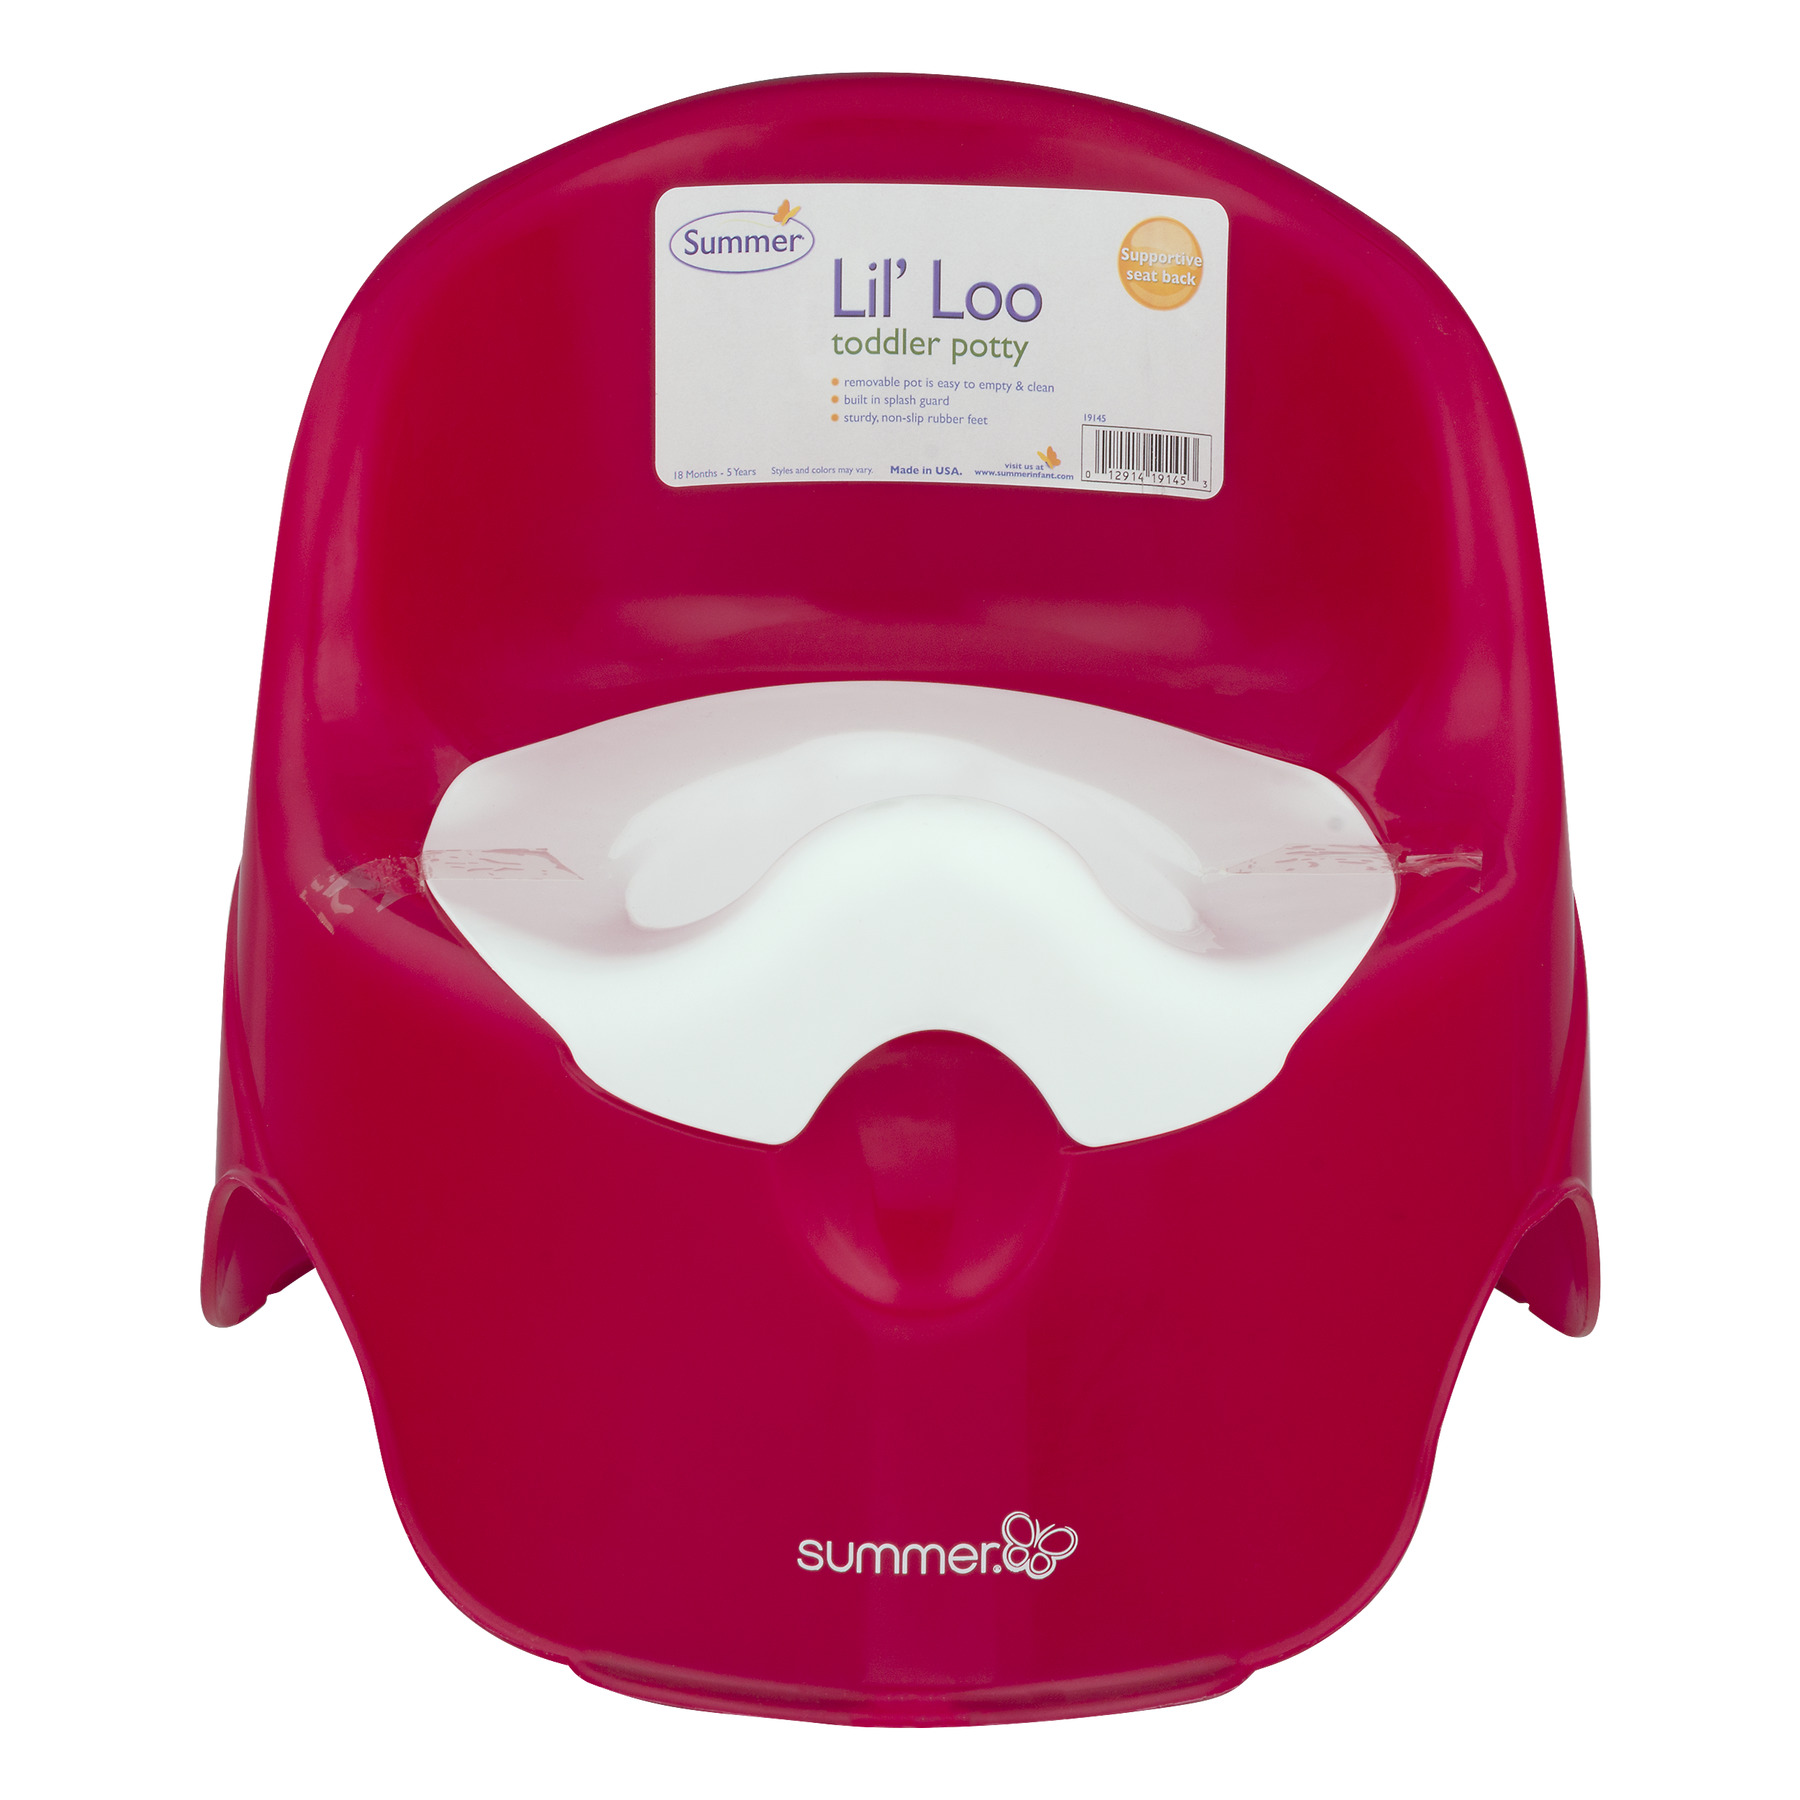 Summer Lil' Loo Toddler Potty, 1.0 CT